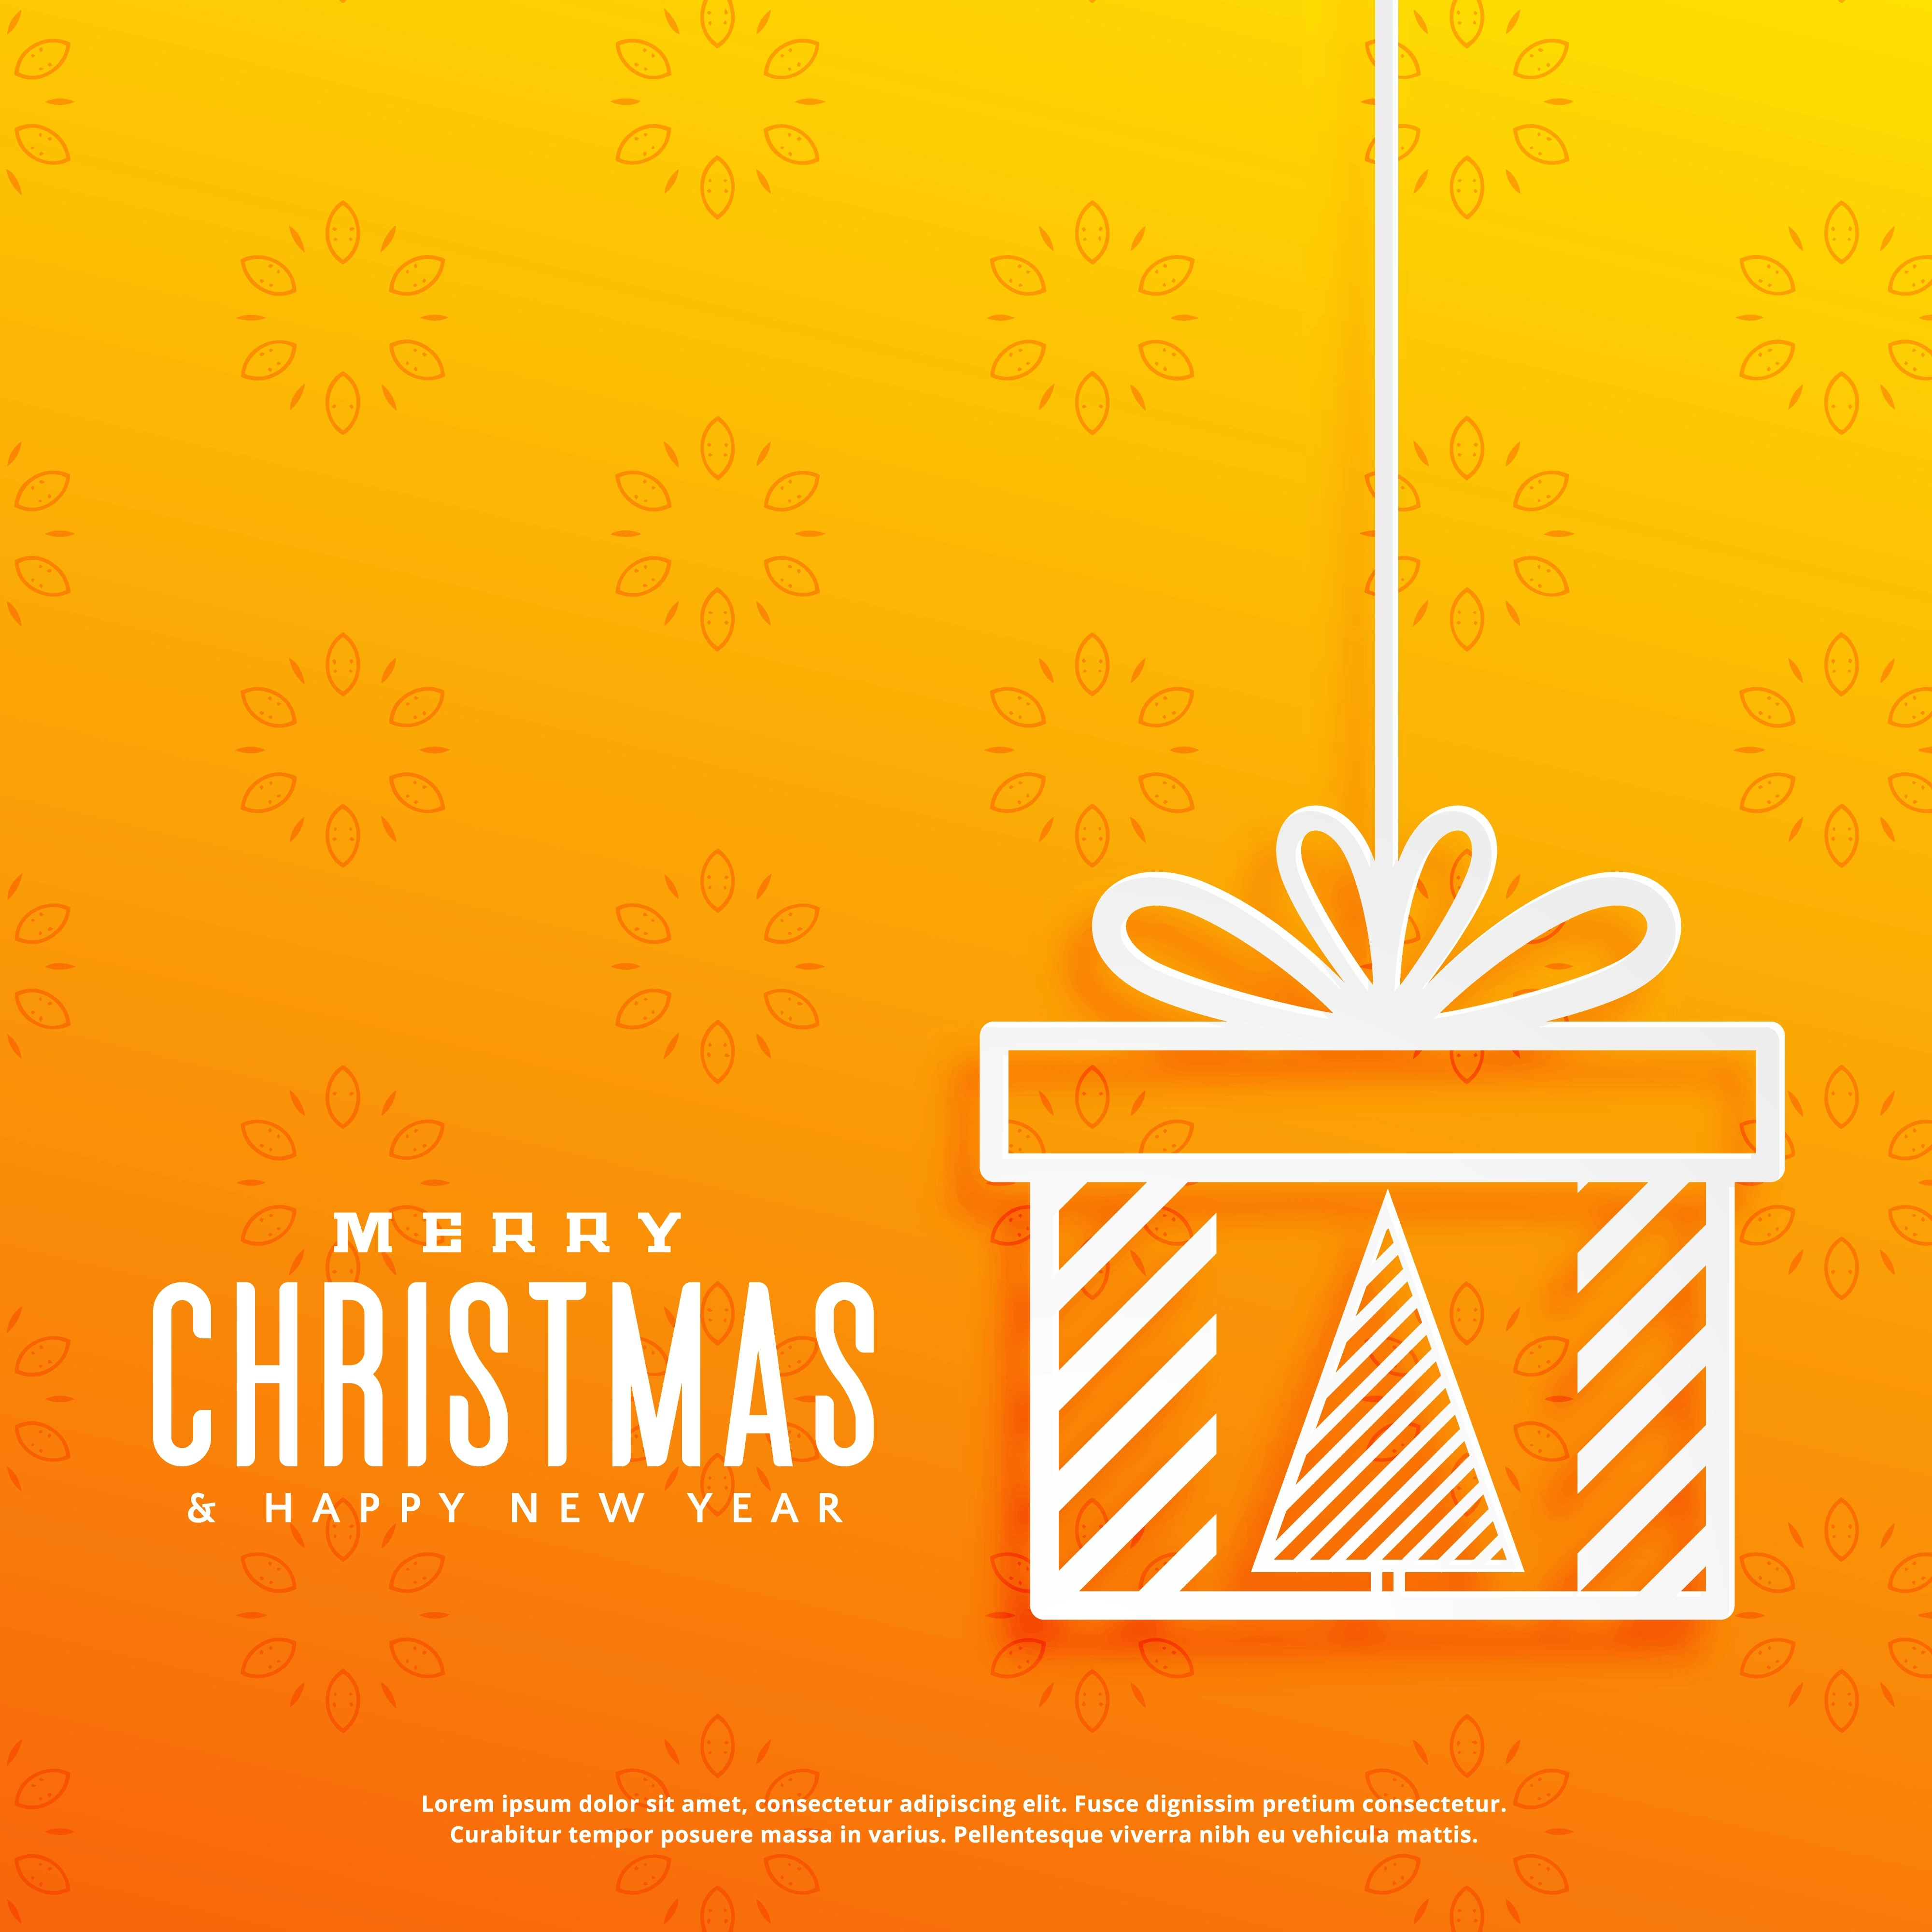 Yellow Background With Christmas Tree Inside A Gift Box